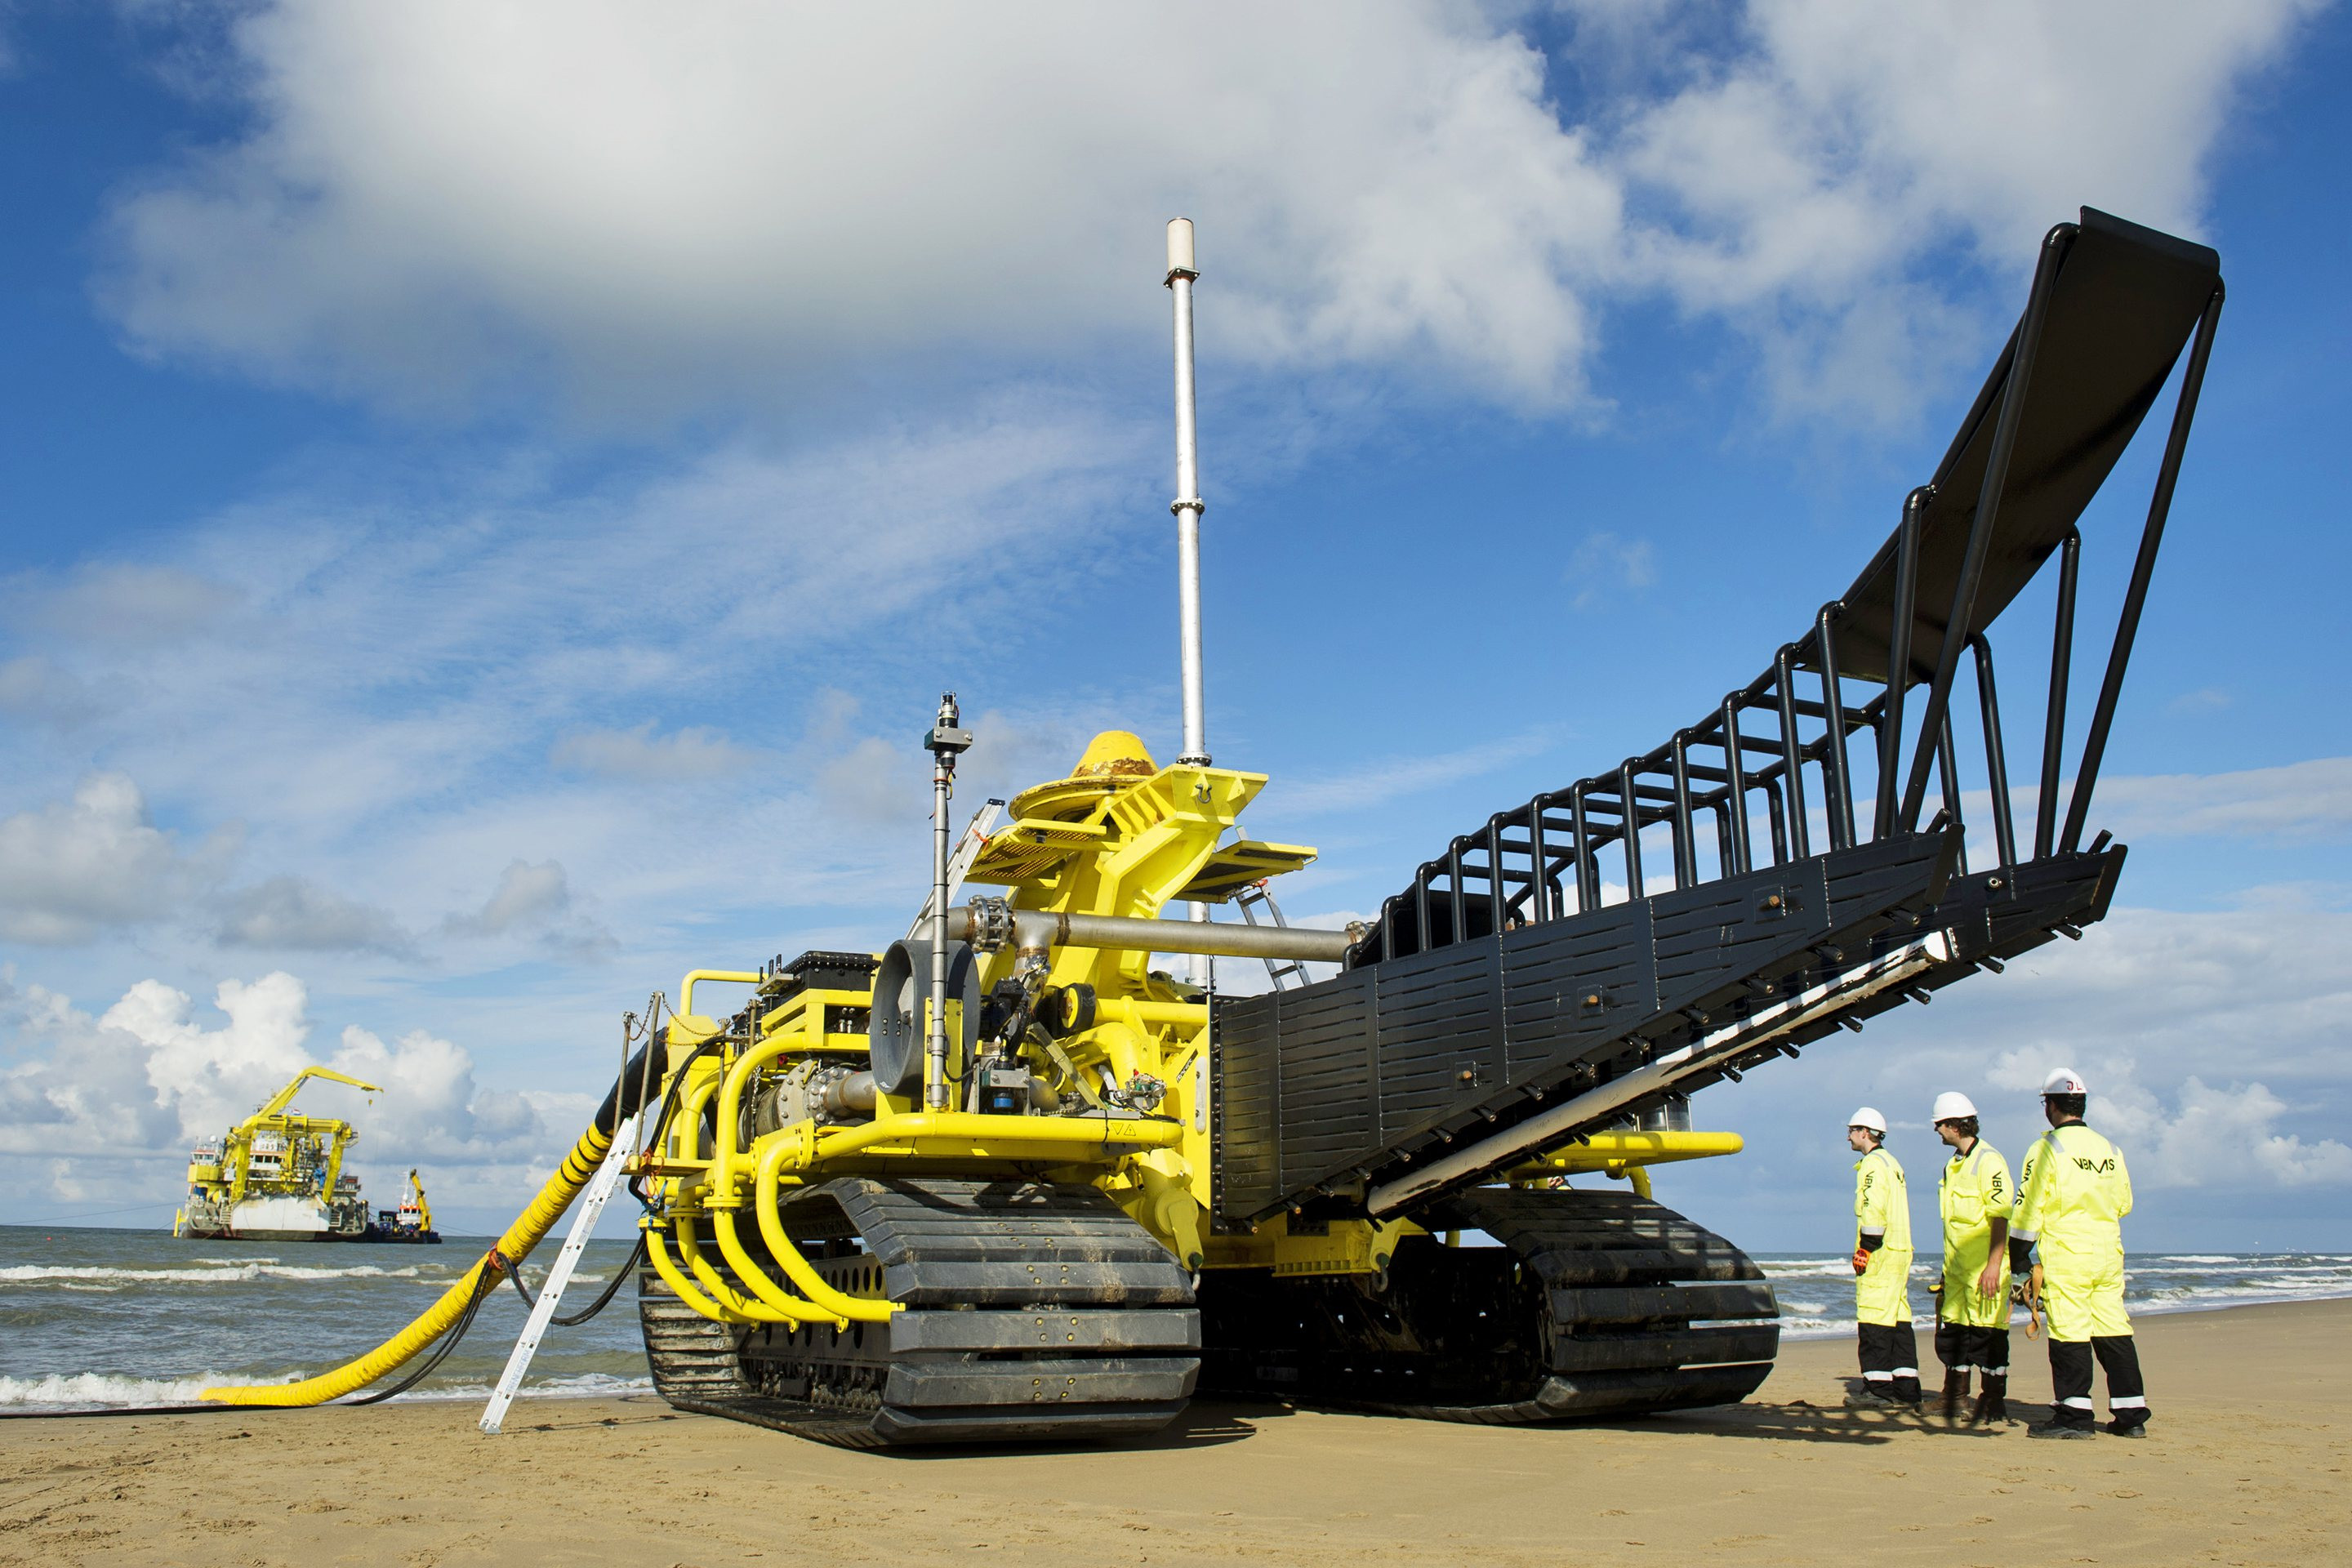 Trenchformer developed by Boskalis and VBMS